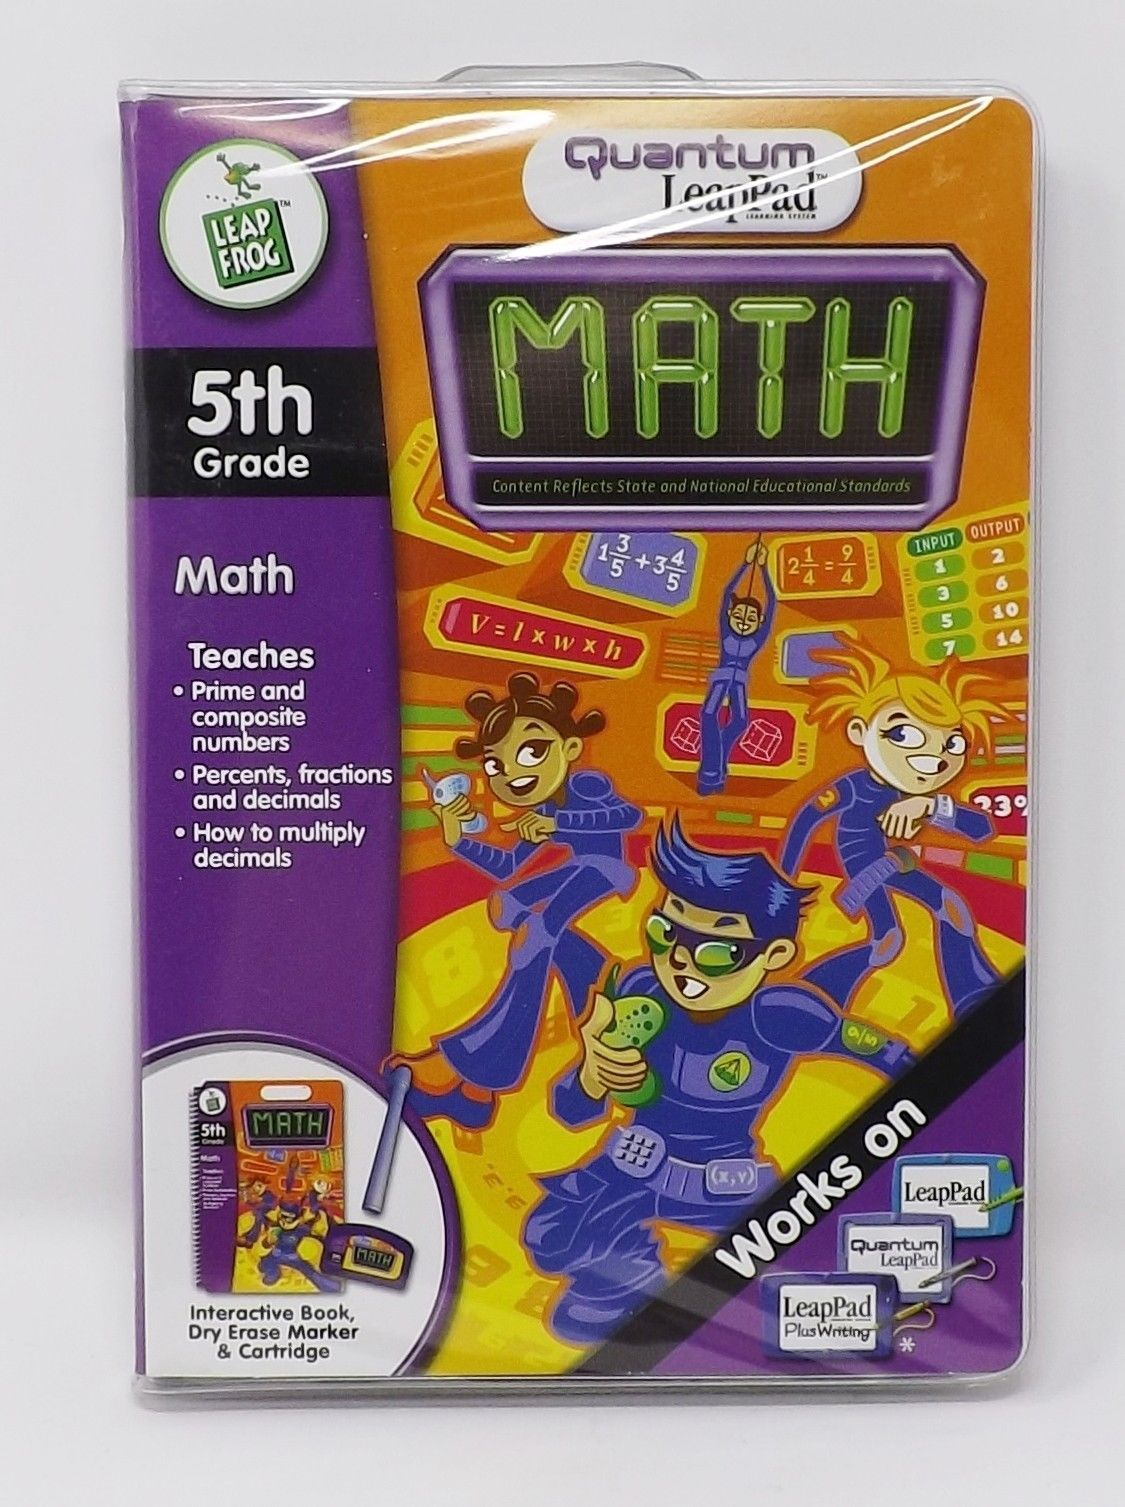 LeapFrog Quantum LeapPad Learning System - New - 5th Grade Math Book - $19.99